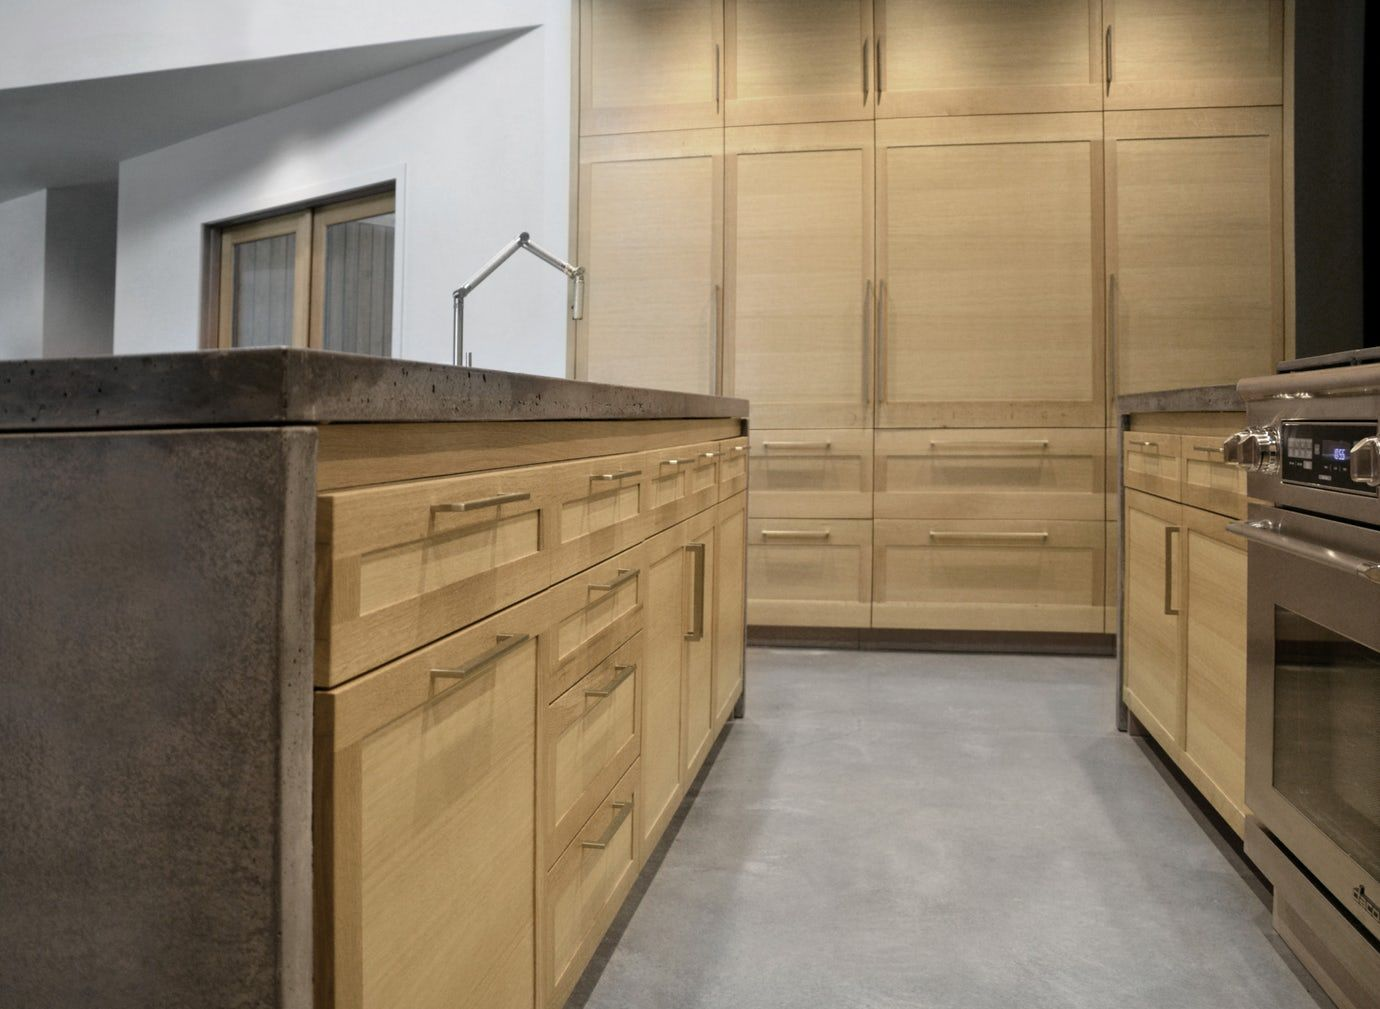 Alaska Vacation House White Oak Cabinets Concrete Counters Kitchen Contemporary Modern By Kitchen Remodel Small Kitchen Remodel Farmhouse Kitchen Remodel